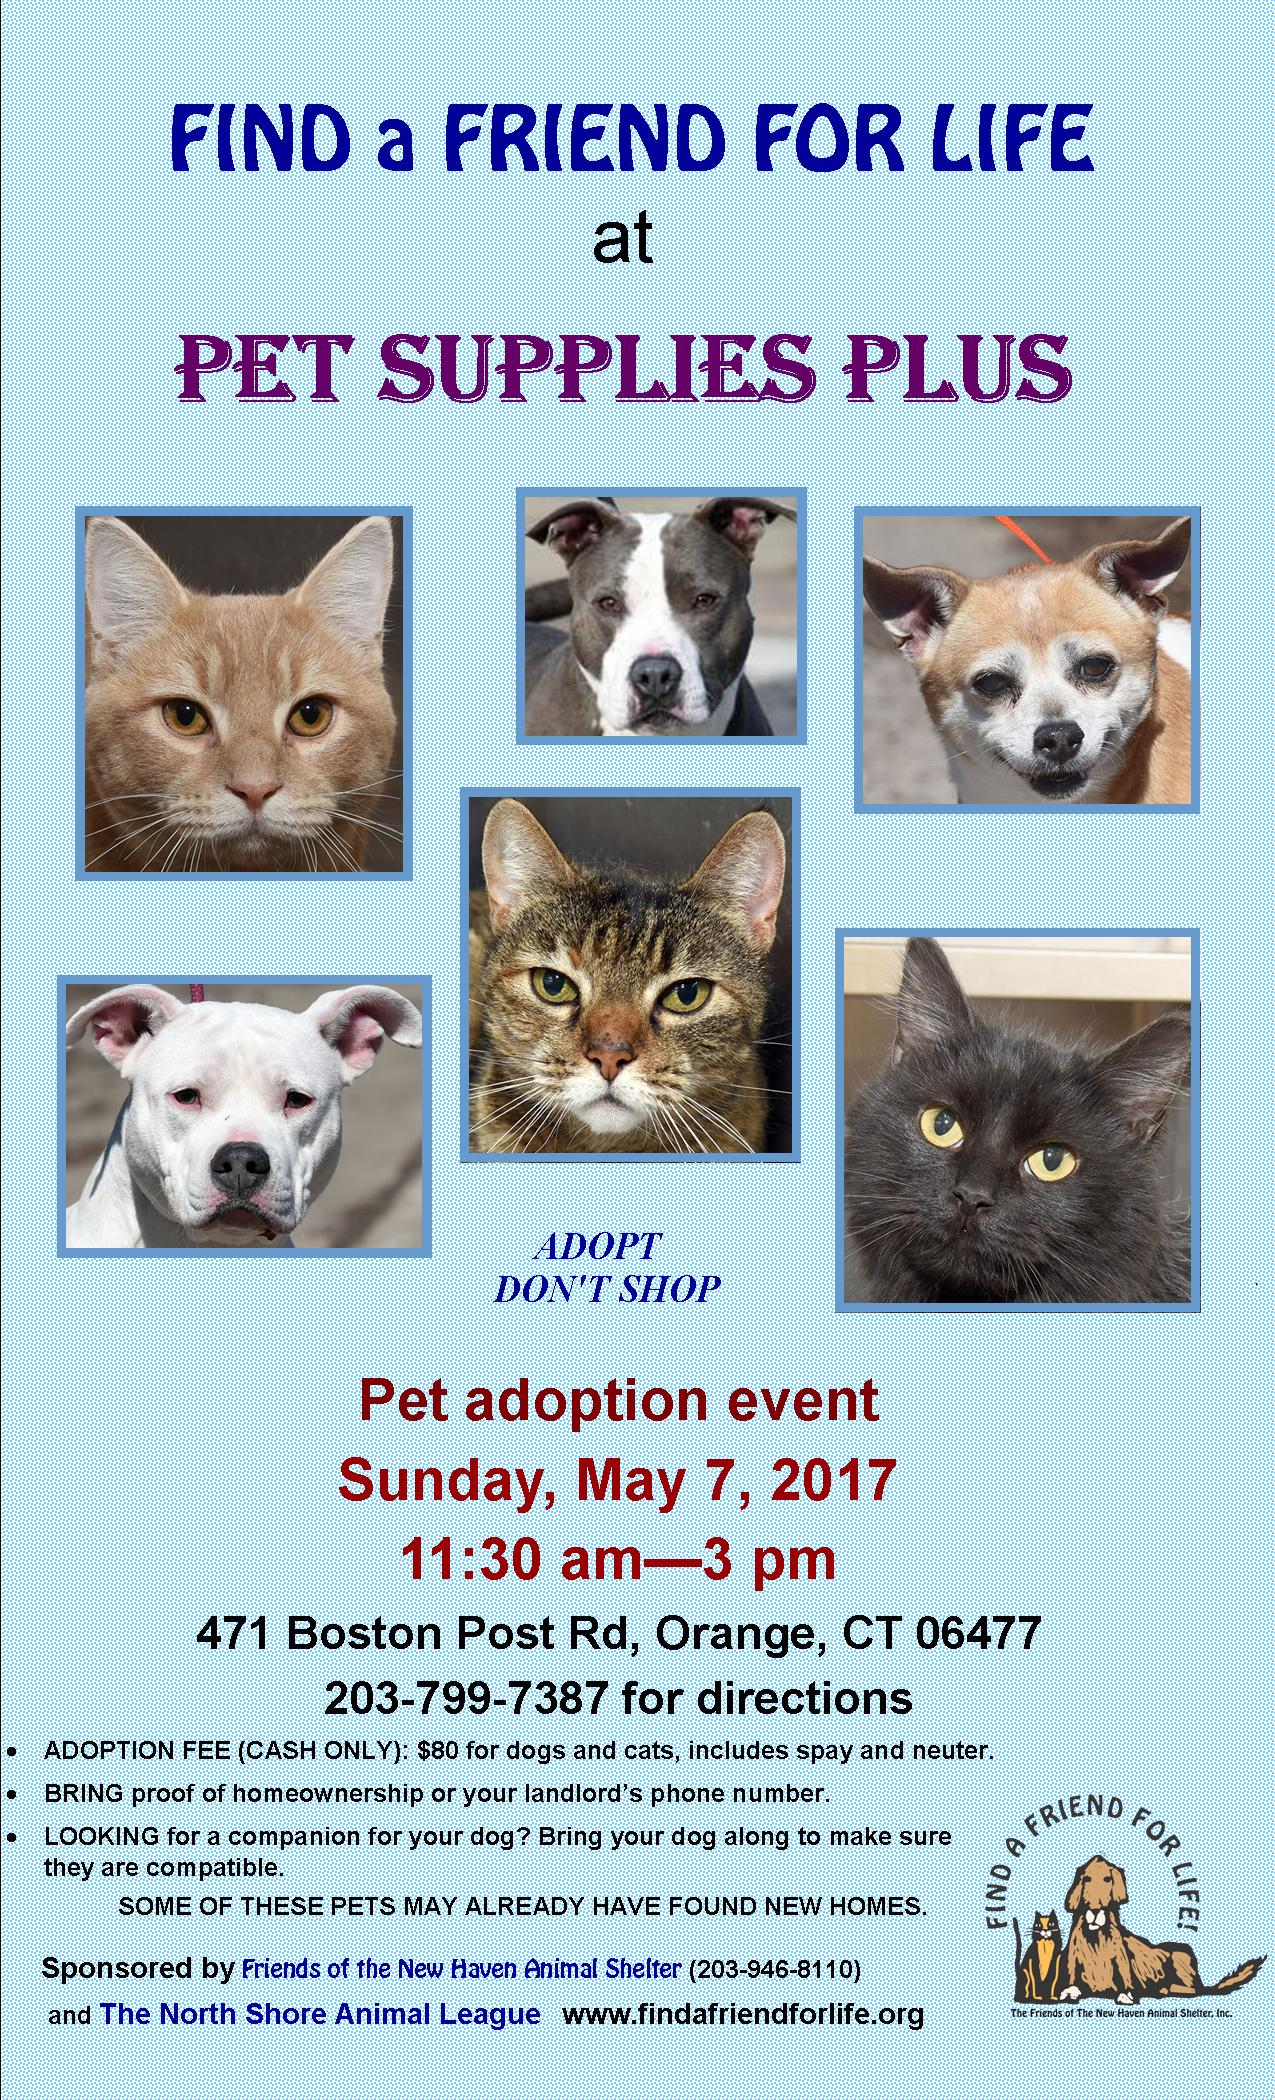 Full Adoption Event